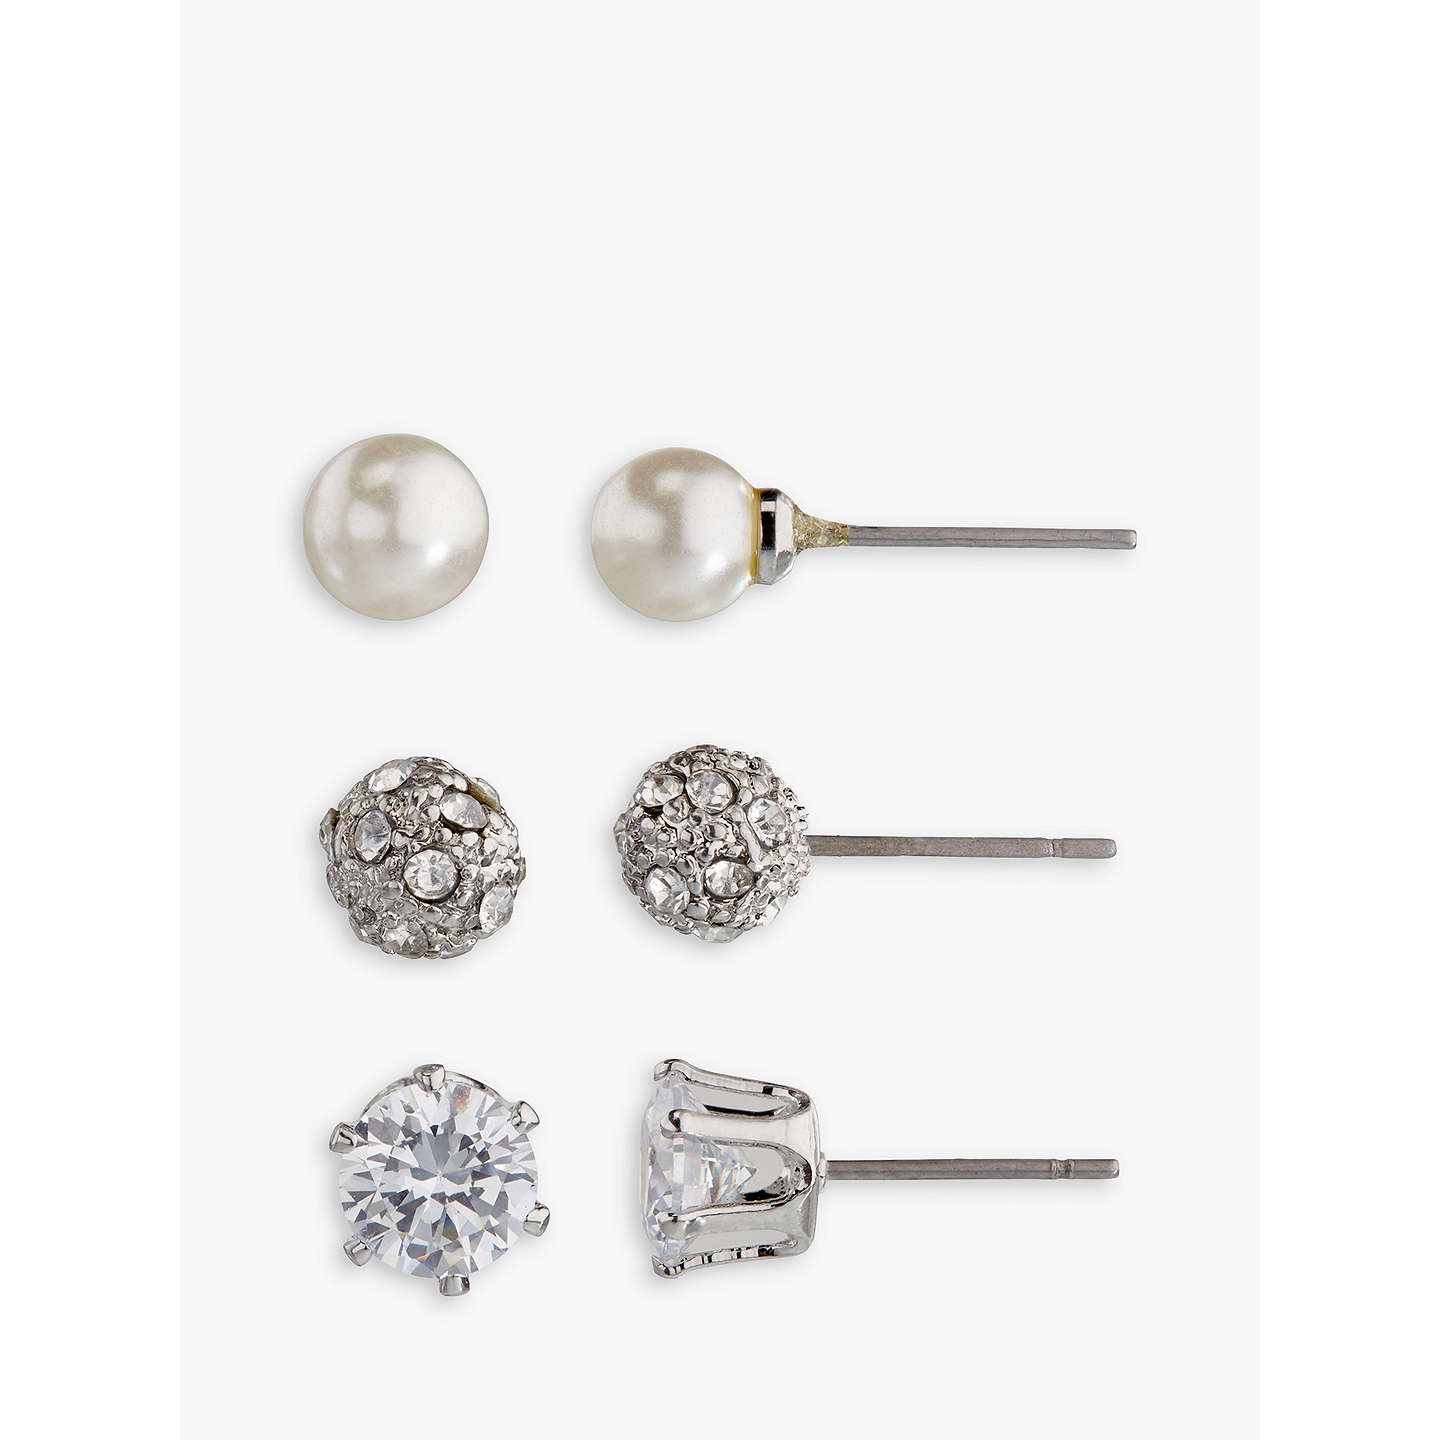 BuyJohn Lewis Faux Pearl and Diamante Round Stud Earrings, Pack of 3, Silver/White Online at johnlewis.com